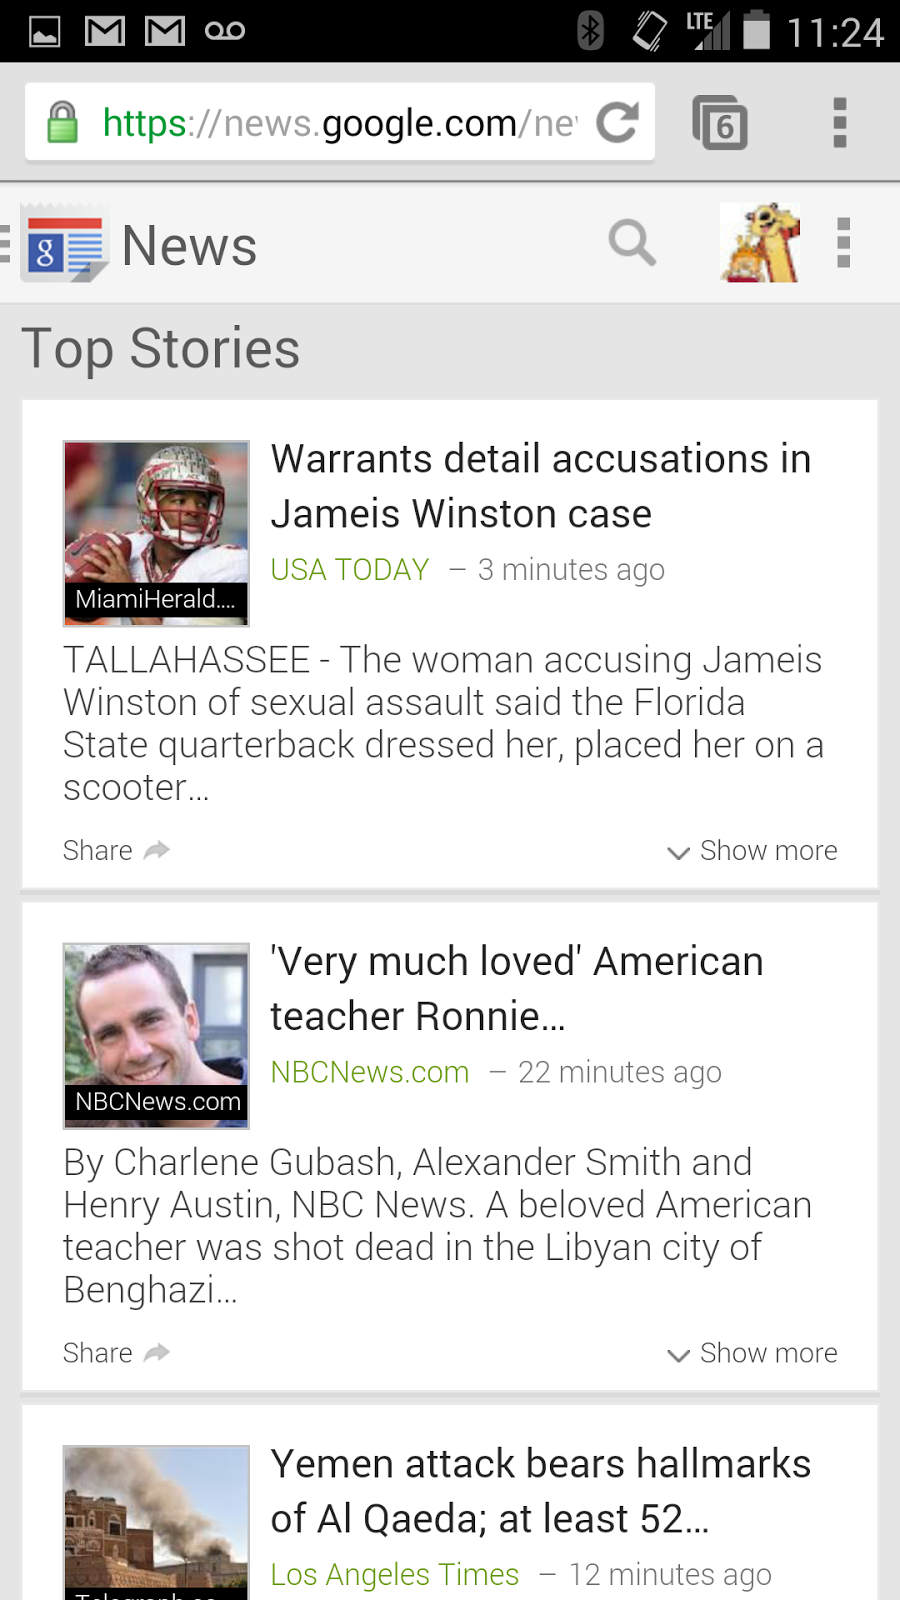 Google News Mobile Web App Redesigned And Updated With New Features